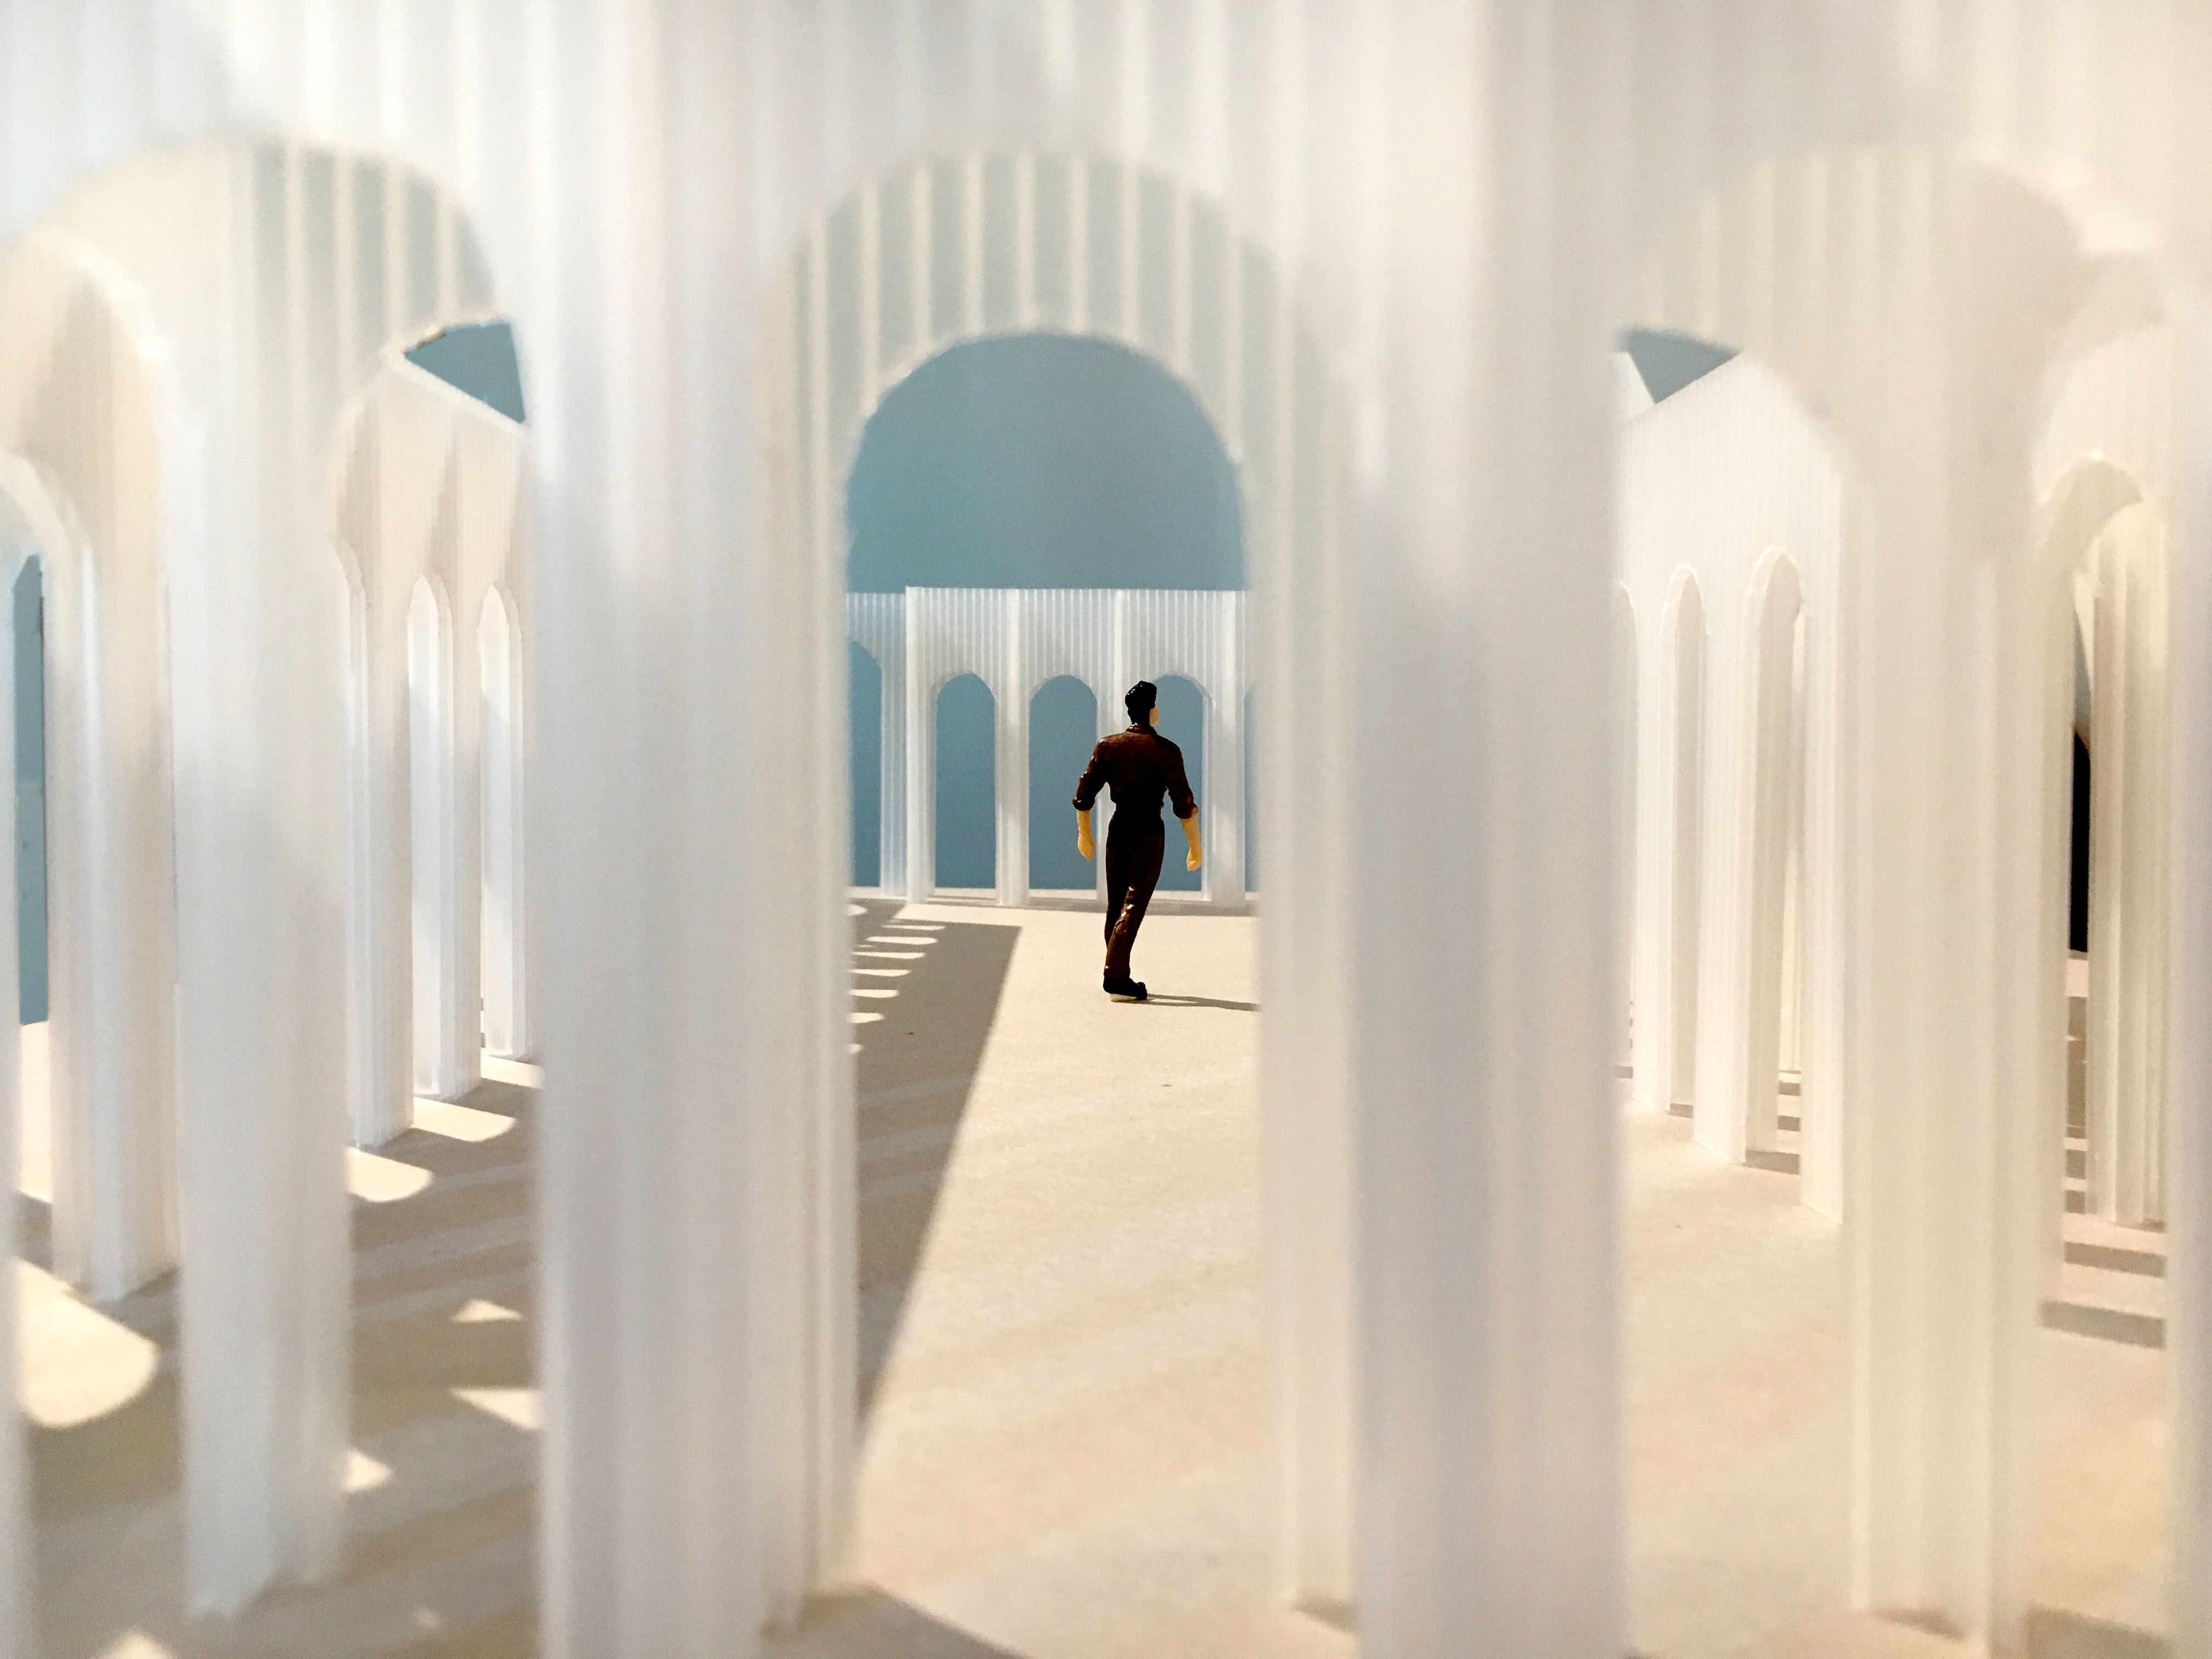 Conceptual image depicting man within translucent arches